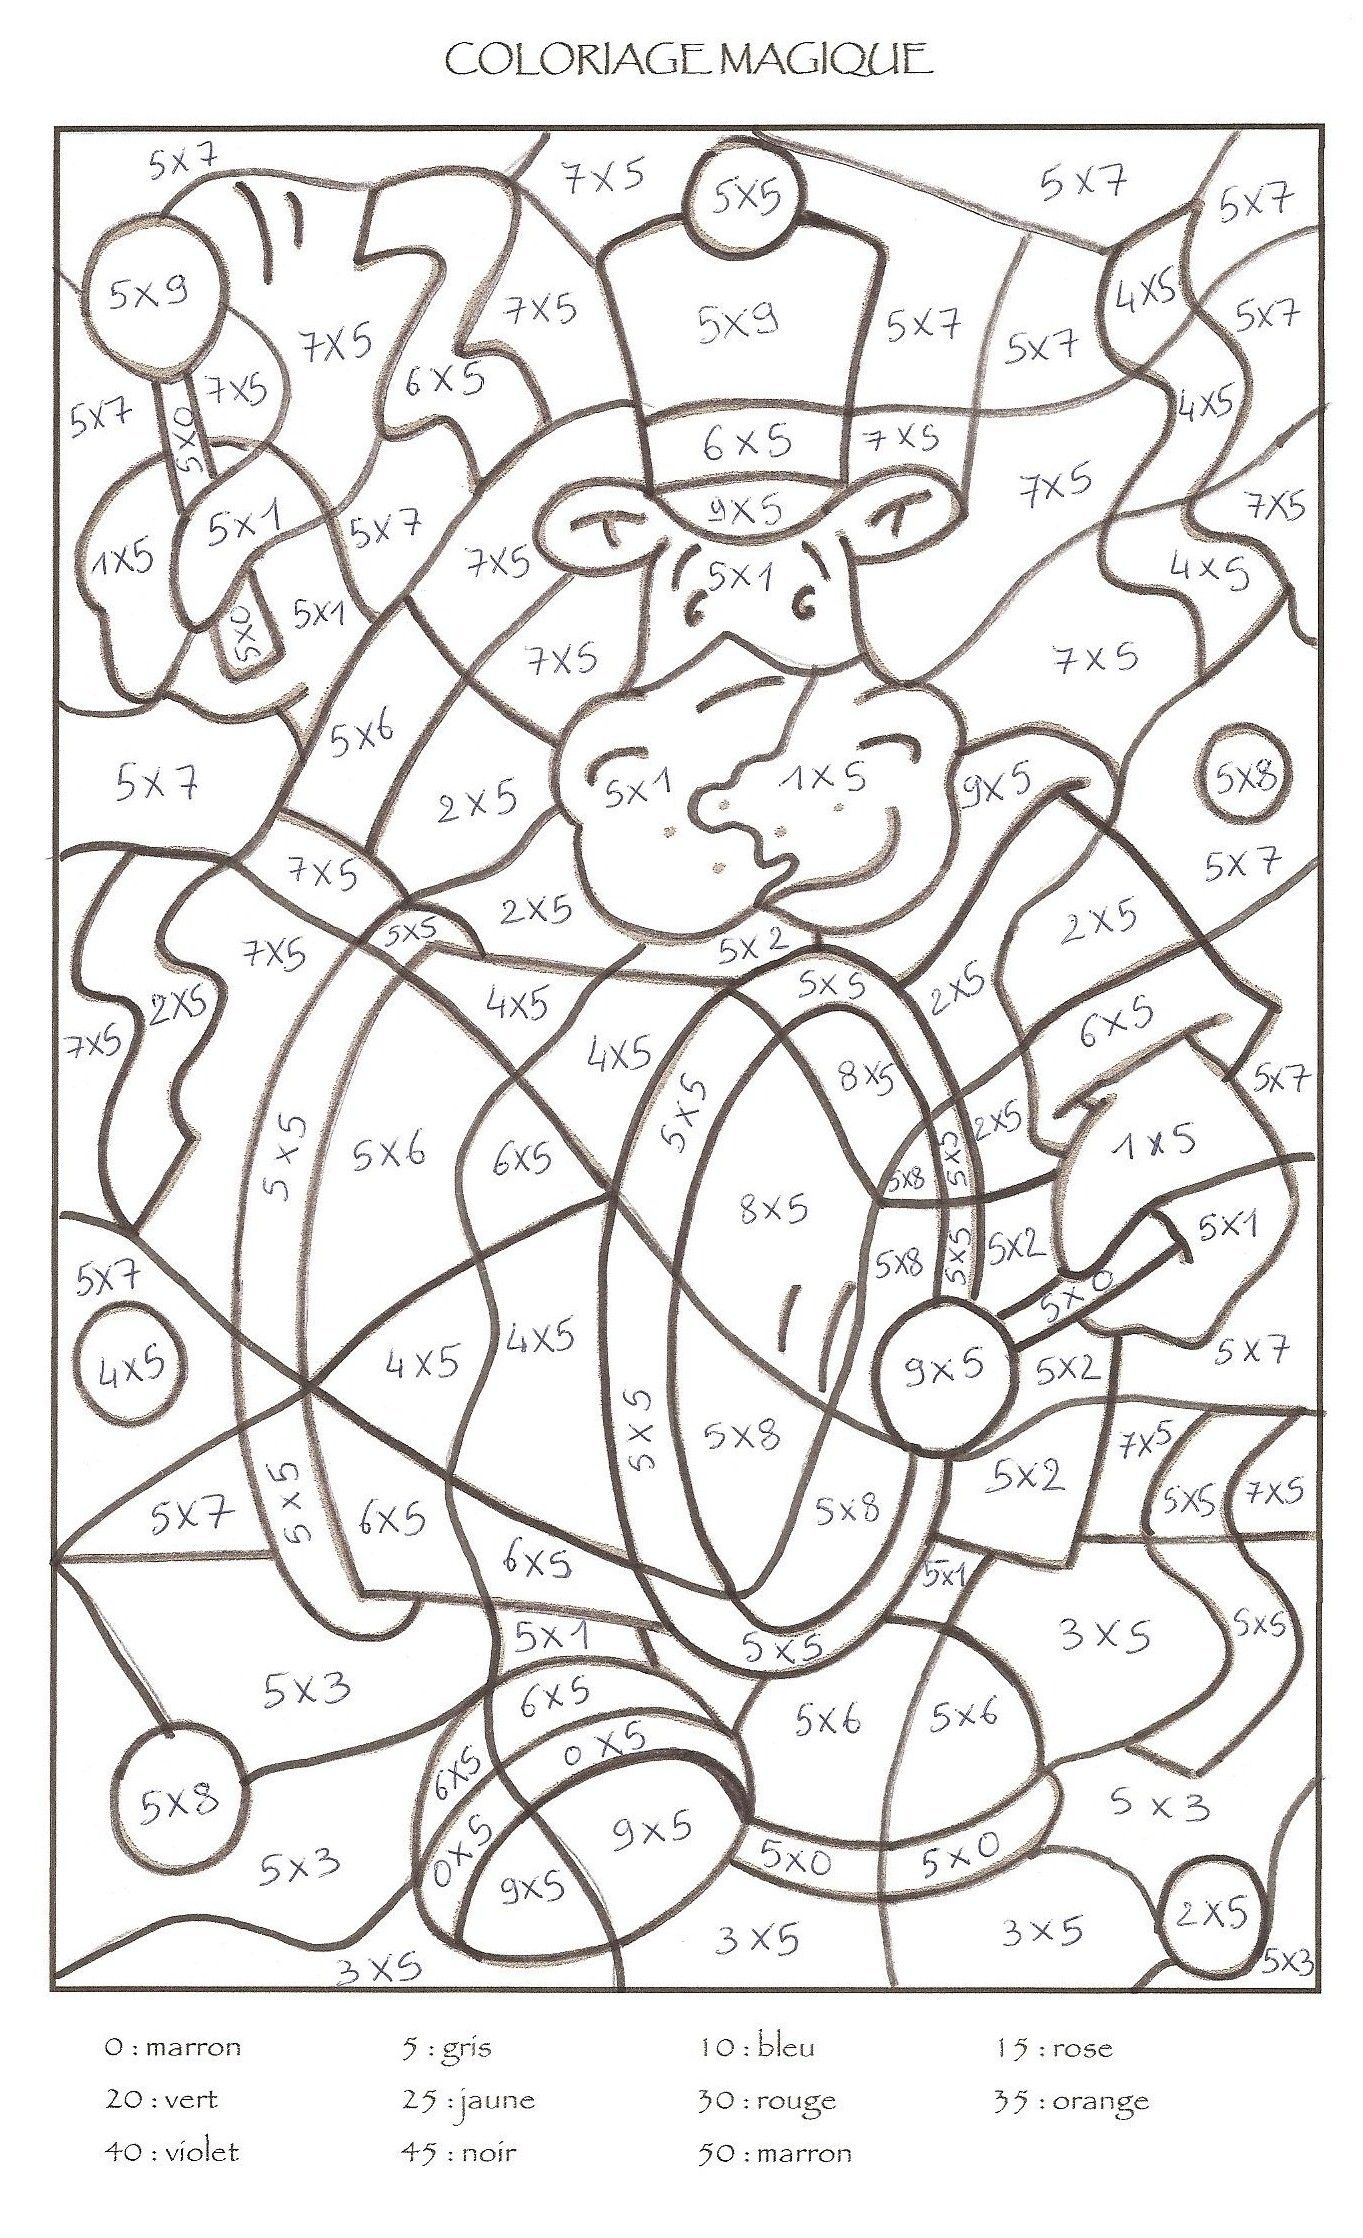 Coloriage magique cp colorier dessin imprimer for Table de multiplication par 7